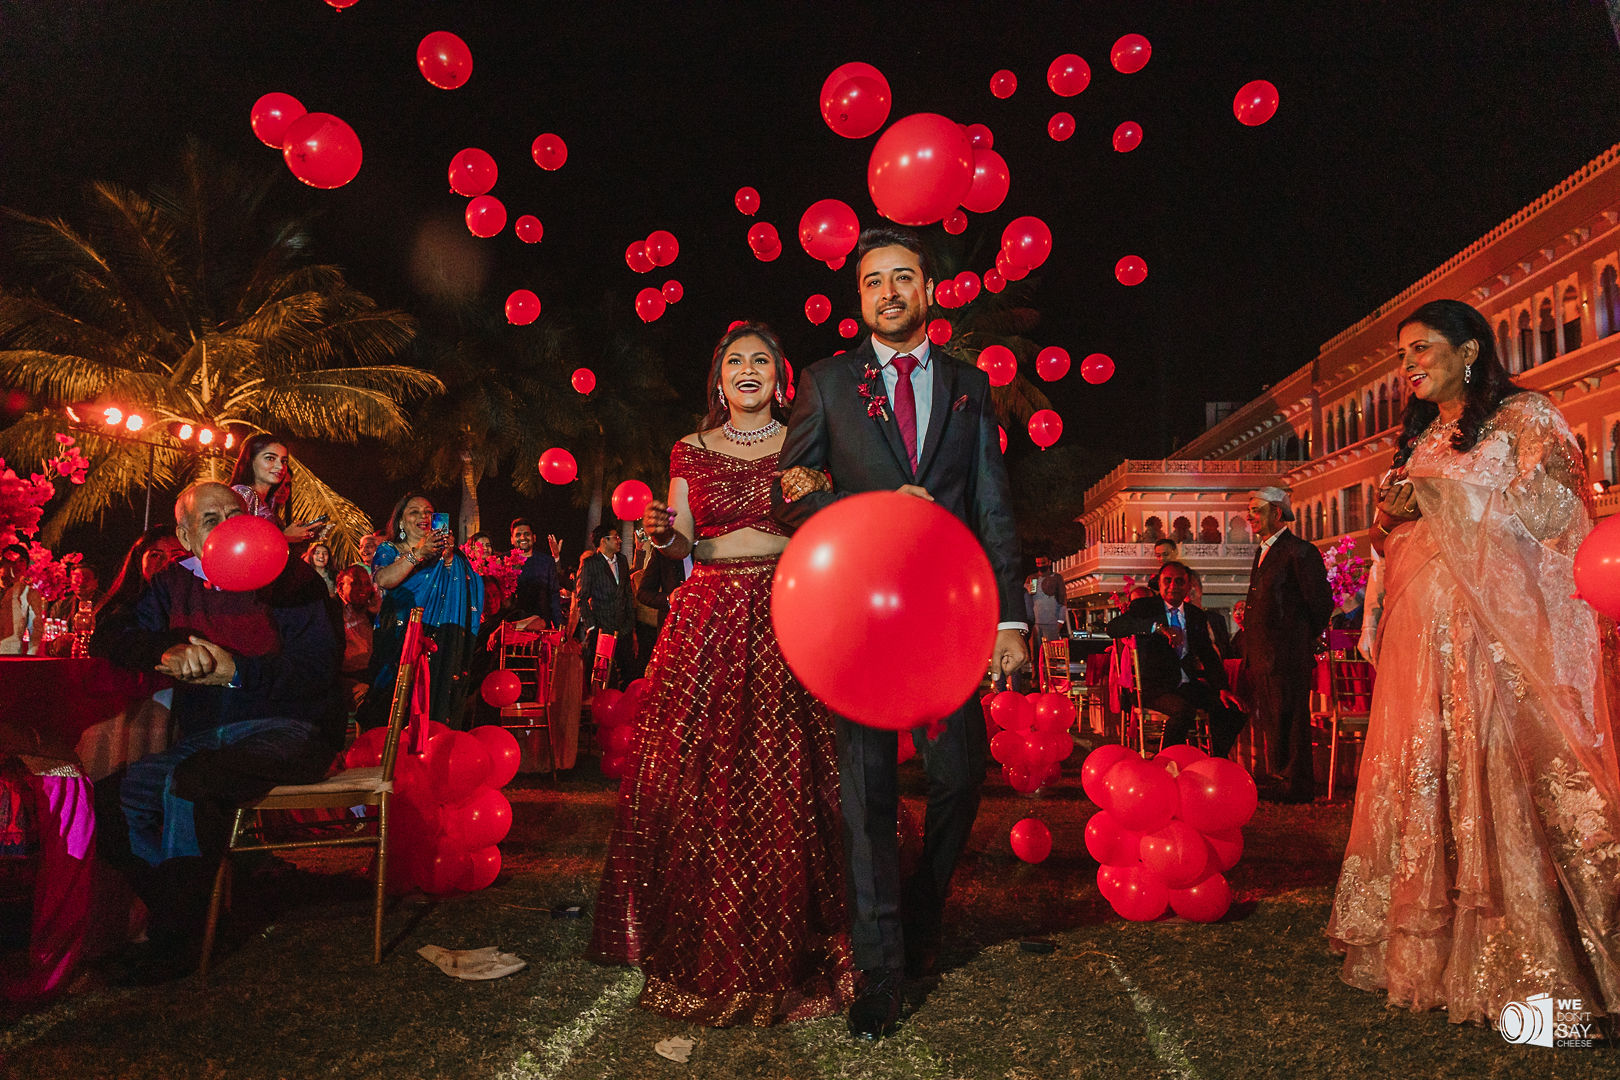 couple entry with red balloons